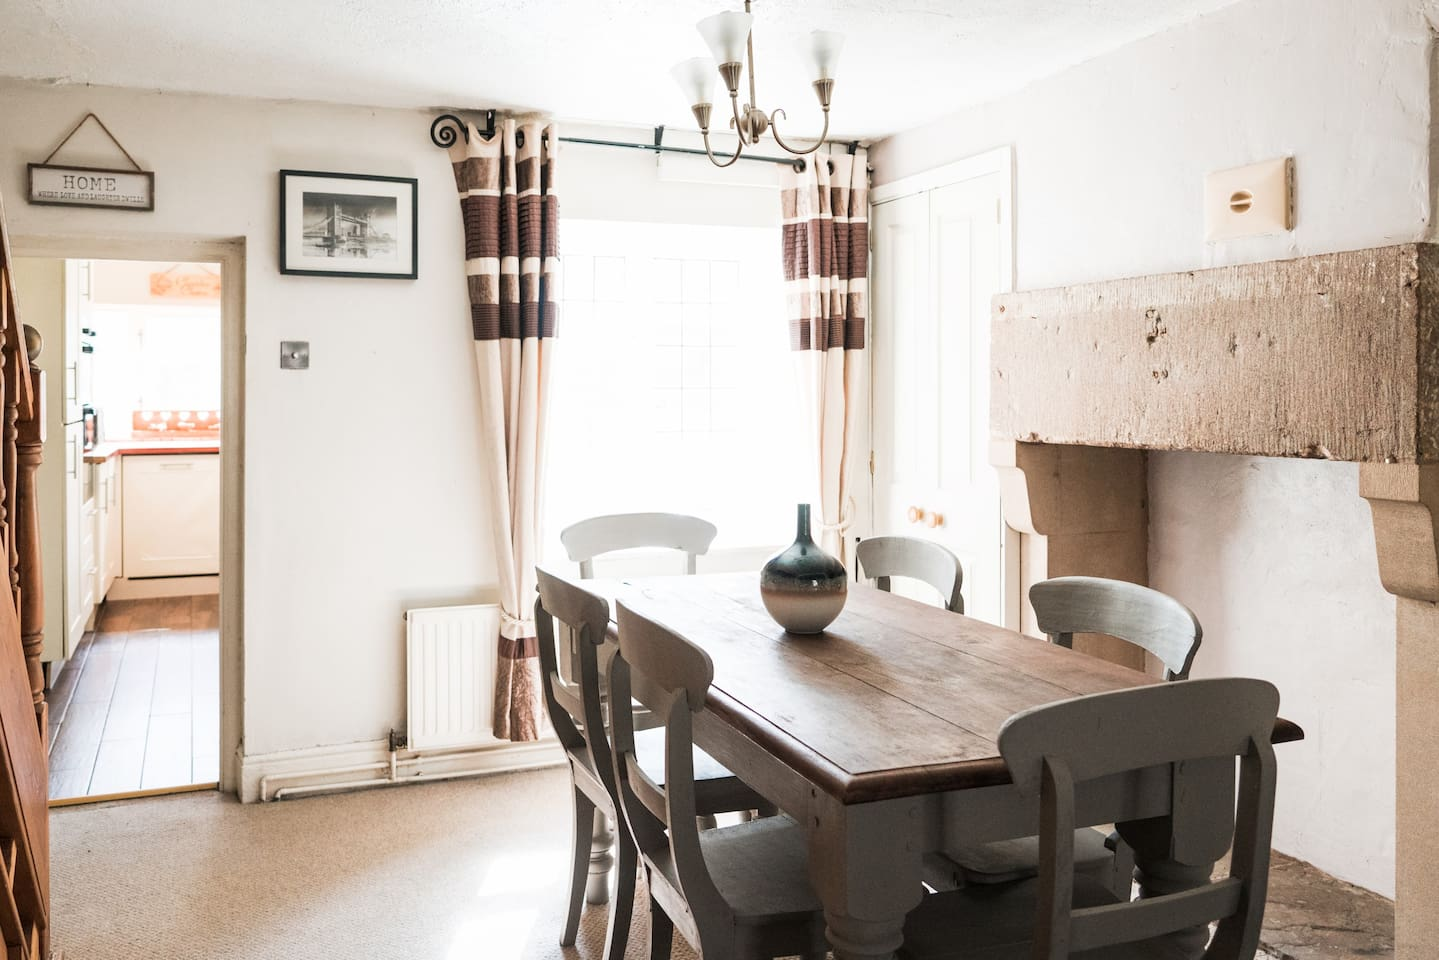 This well appointed cottage in the heart of Cromford village is ideal for small groups and families to explore the delights of the Peak District and Derwent Valleys.